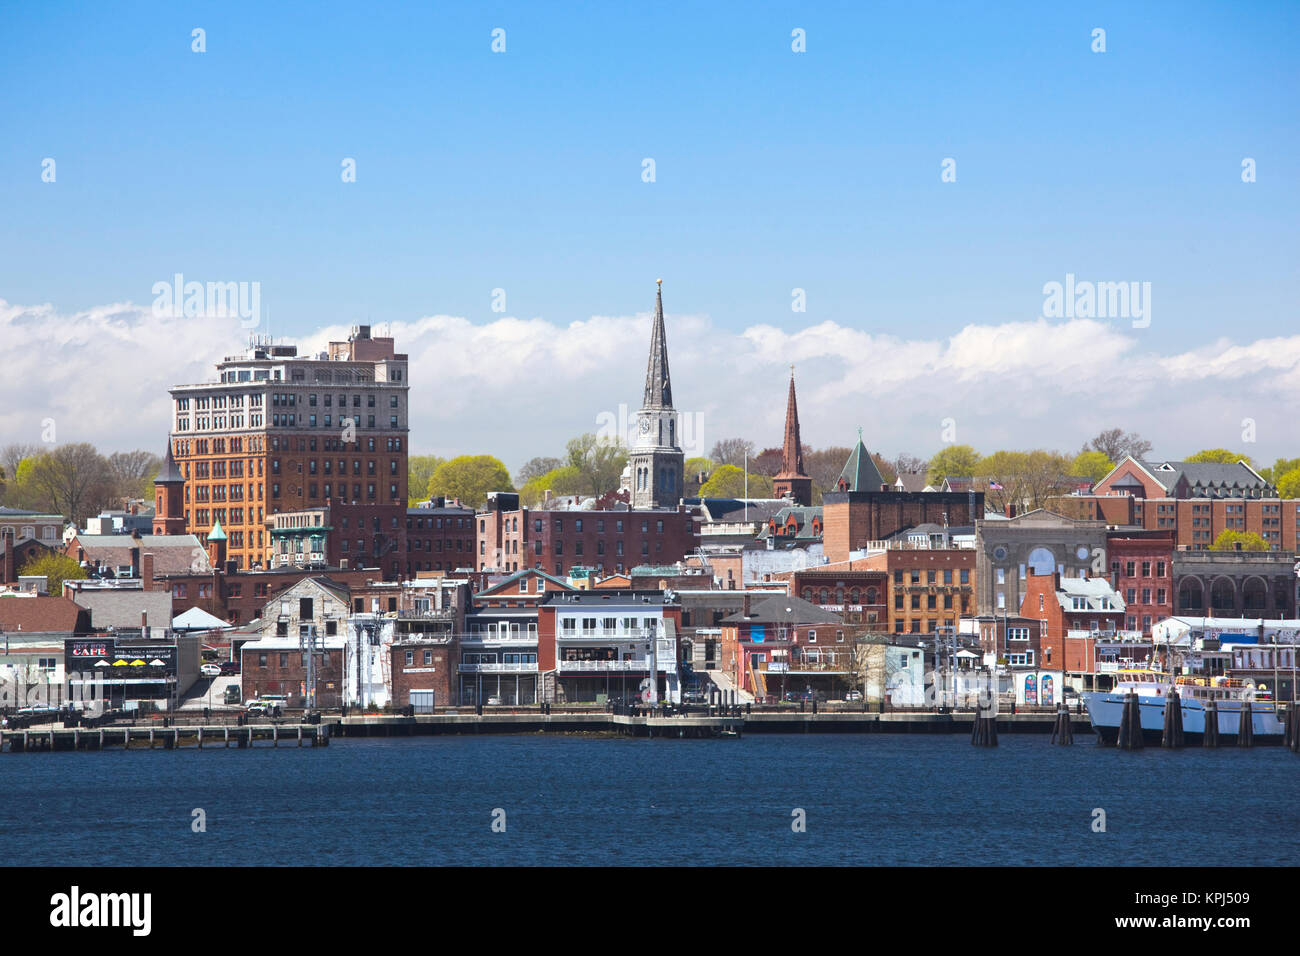 USA, Connecticut, New London, city view from the harbor - Stock Image